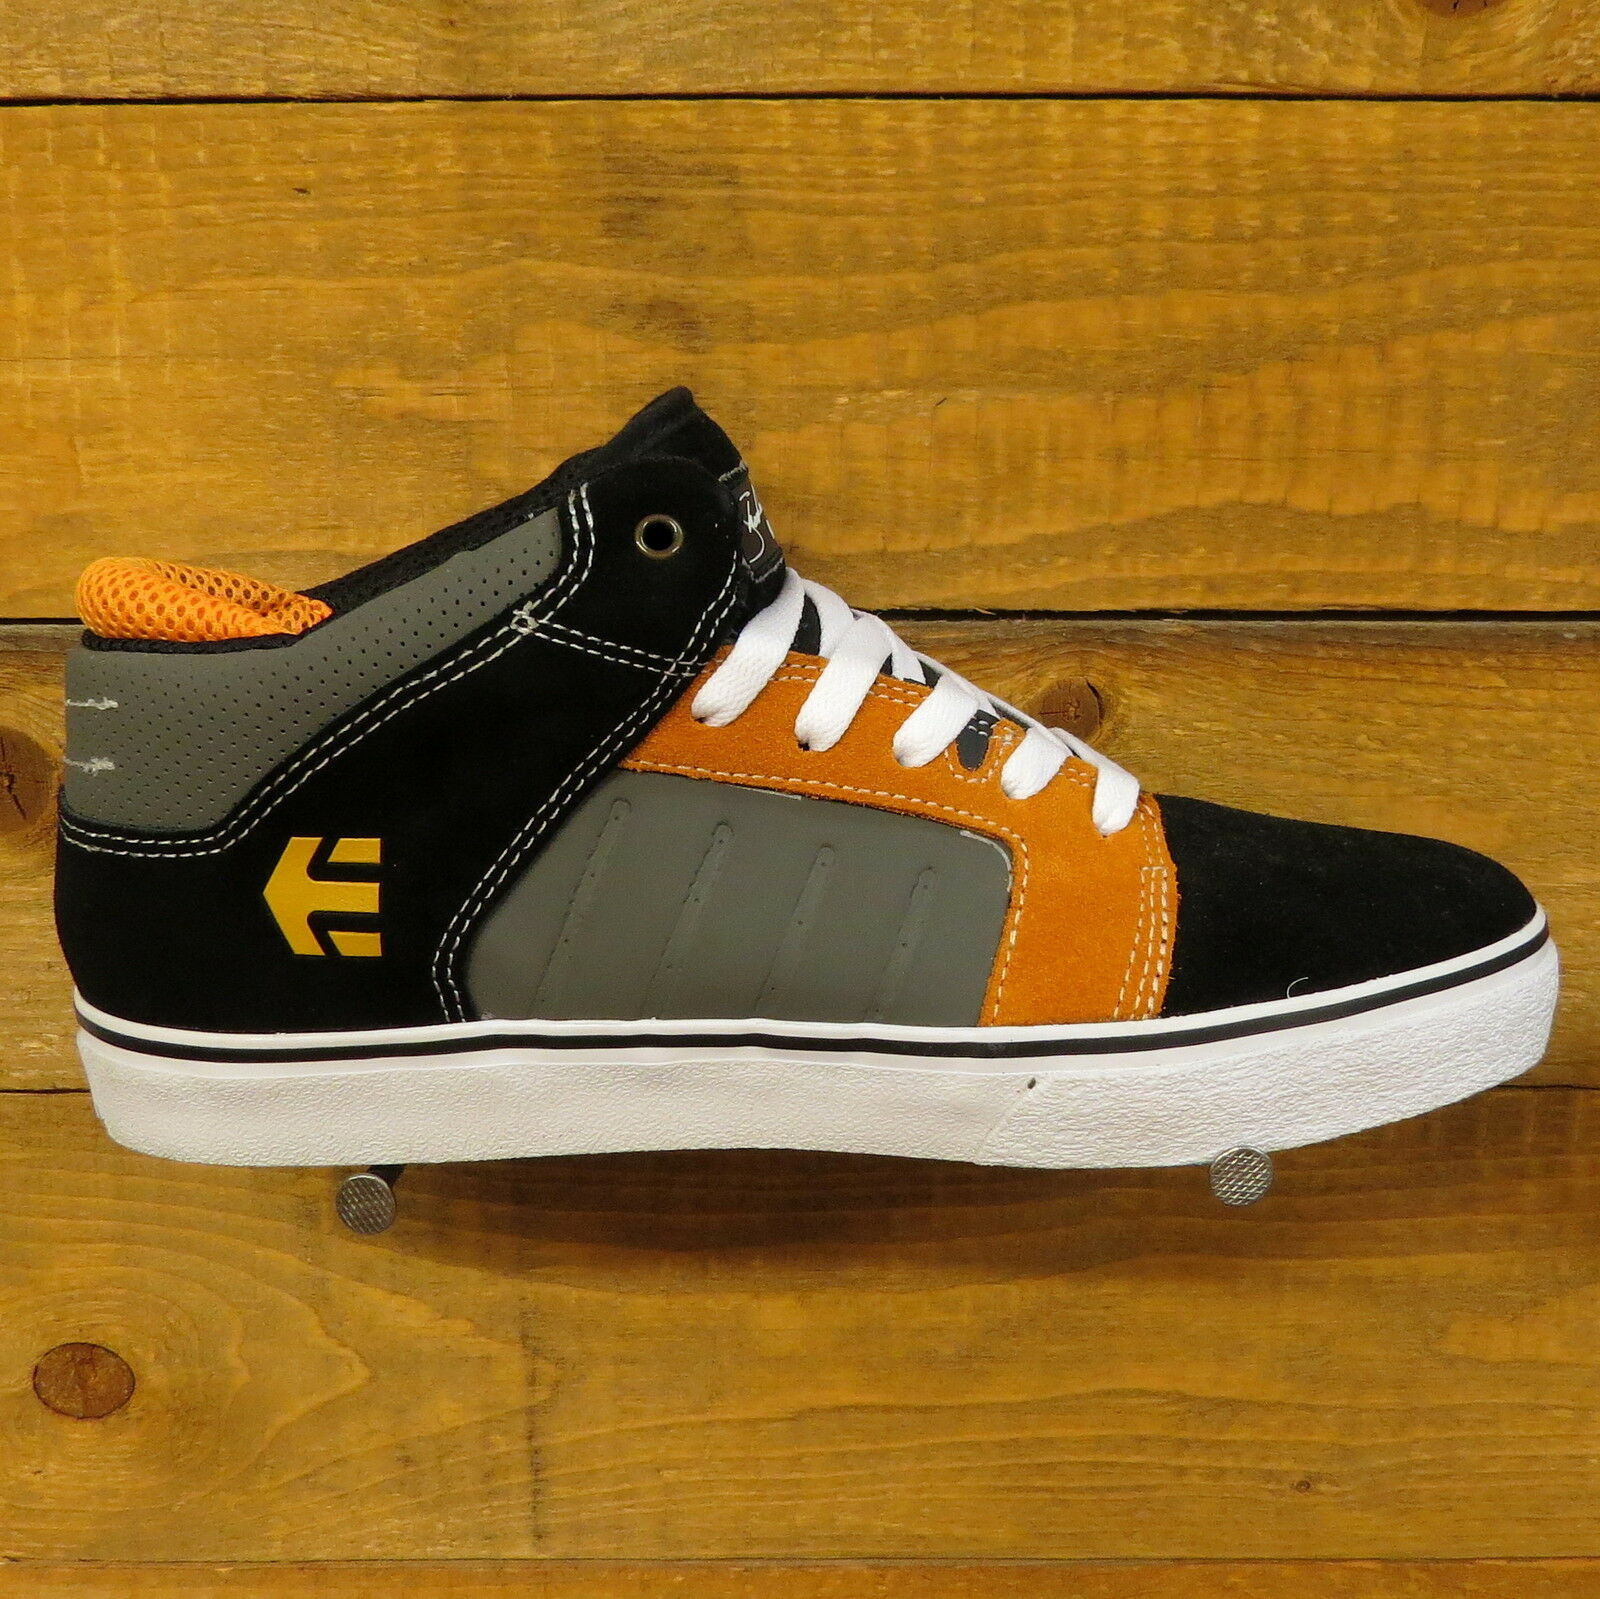 ETNIES Sheckler 5 Herren Skateschuhe Sneaker black/grey/orange 4102000086577